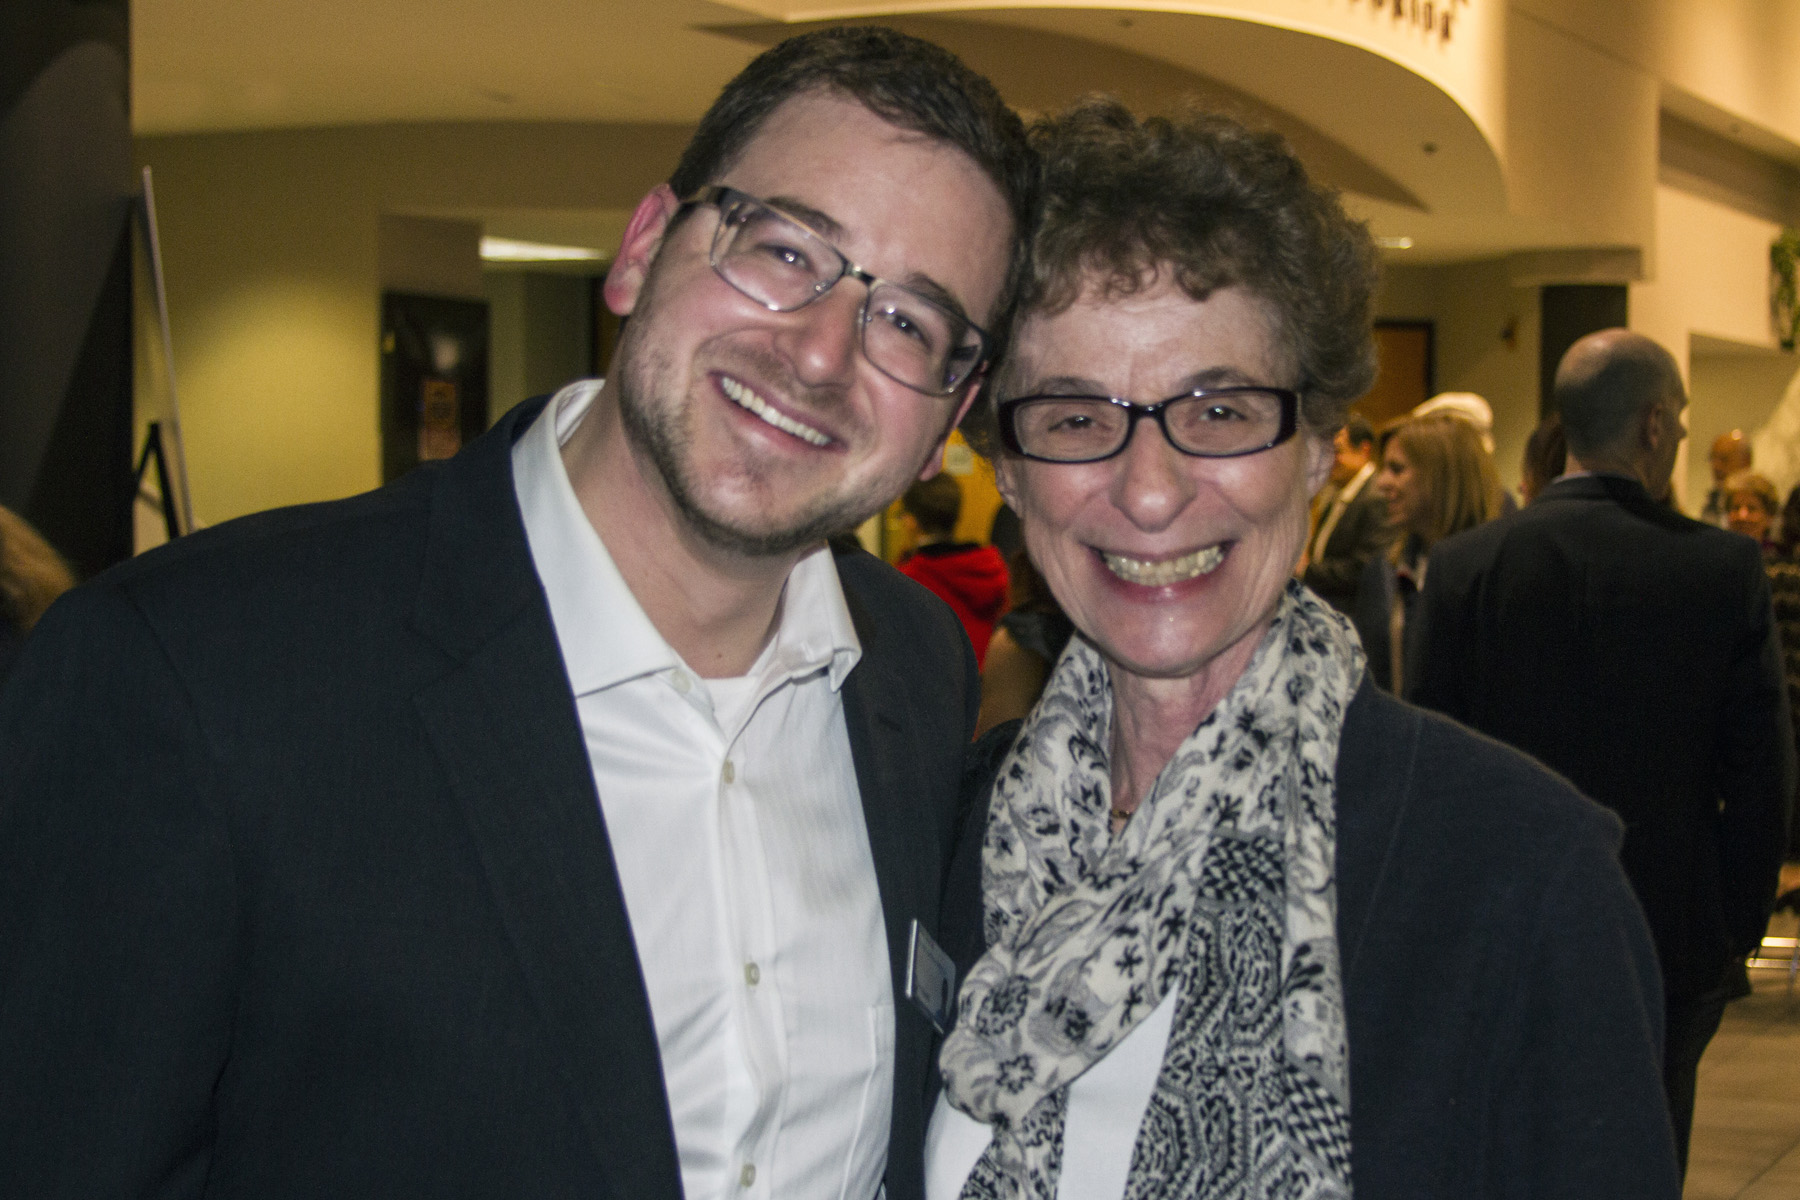 ann arbor jewish personals Our staff eileen freed,  eileen is honored to re-join the jewish federation of greater ann arbor team, having previously served for seven years in a number of .